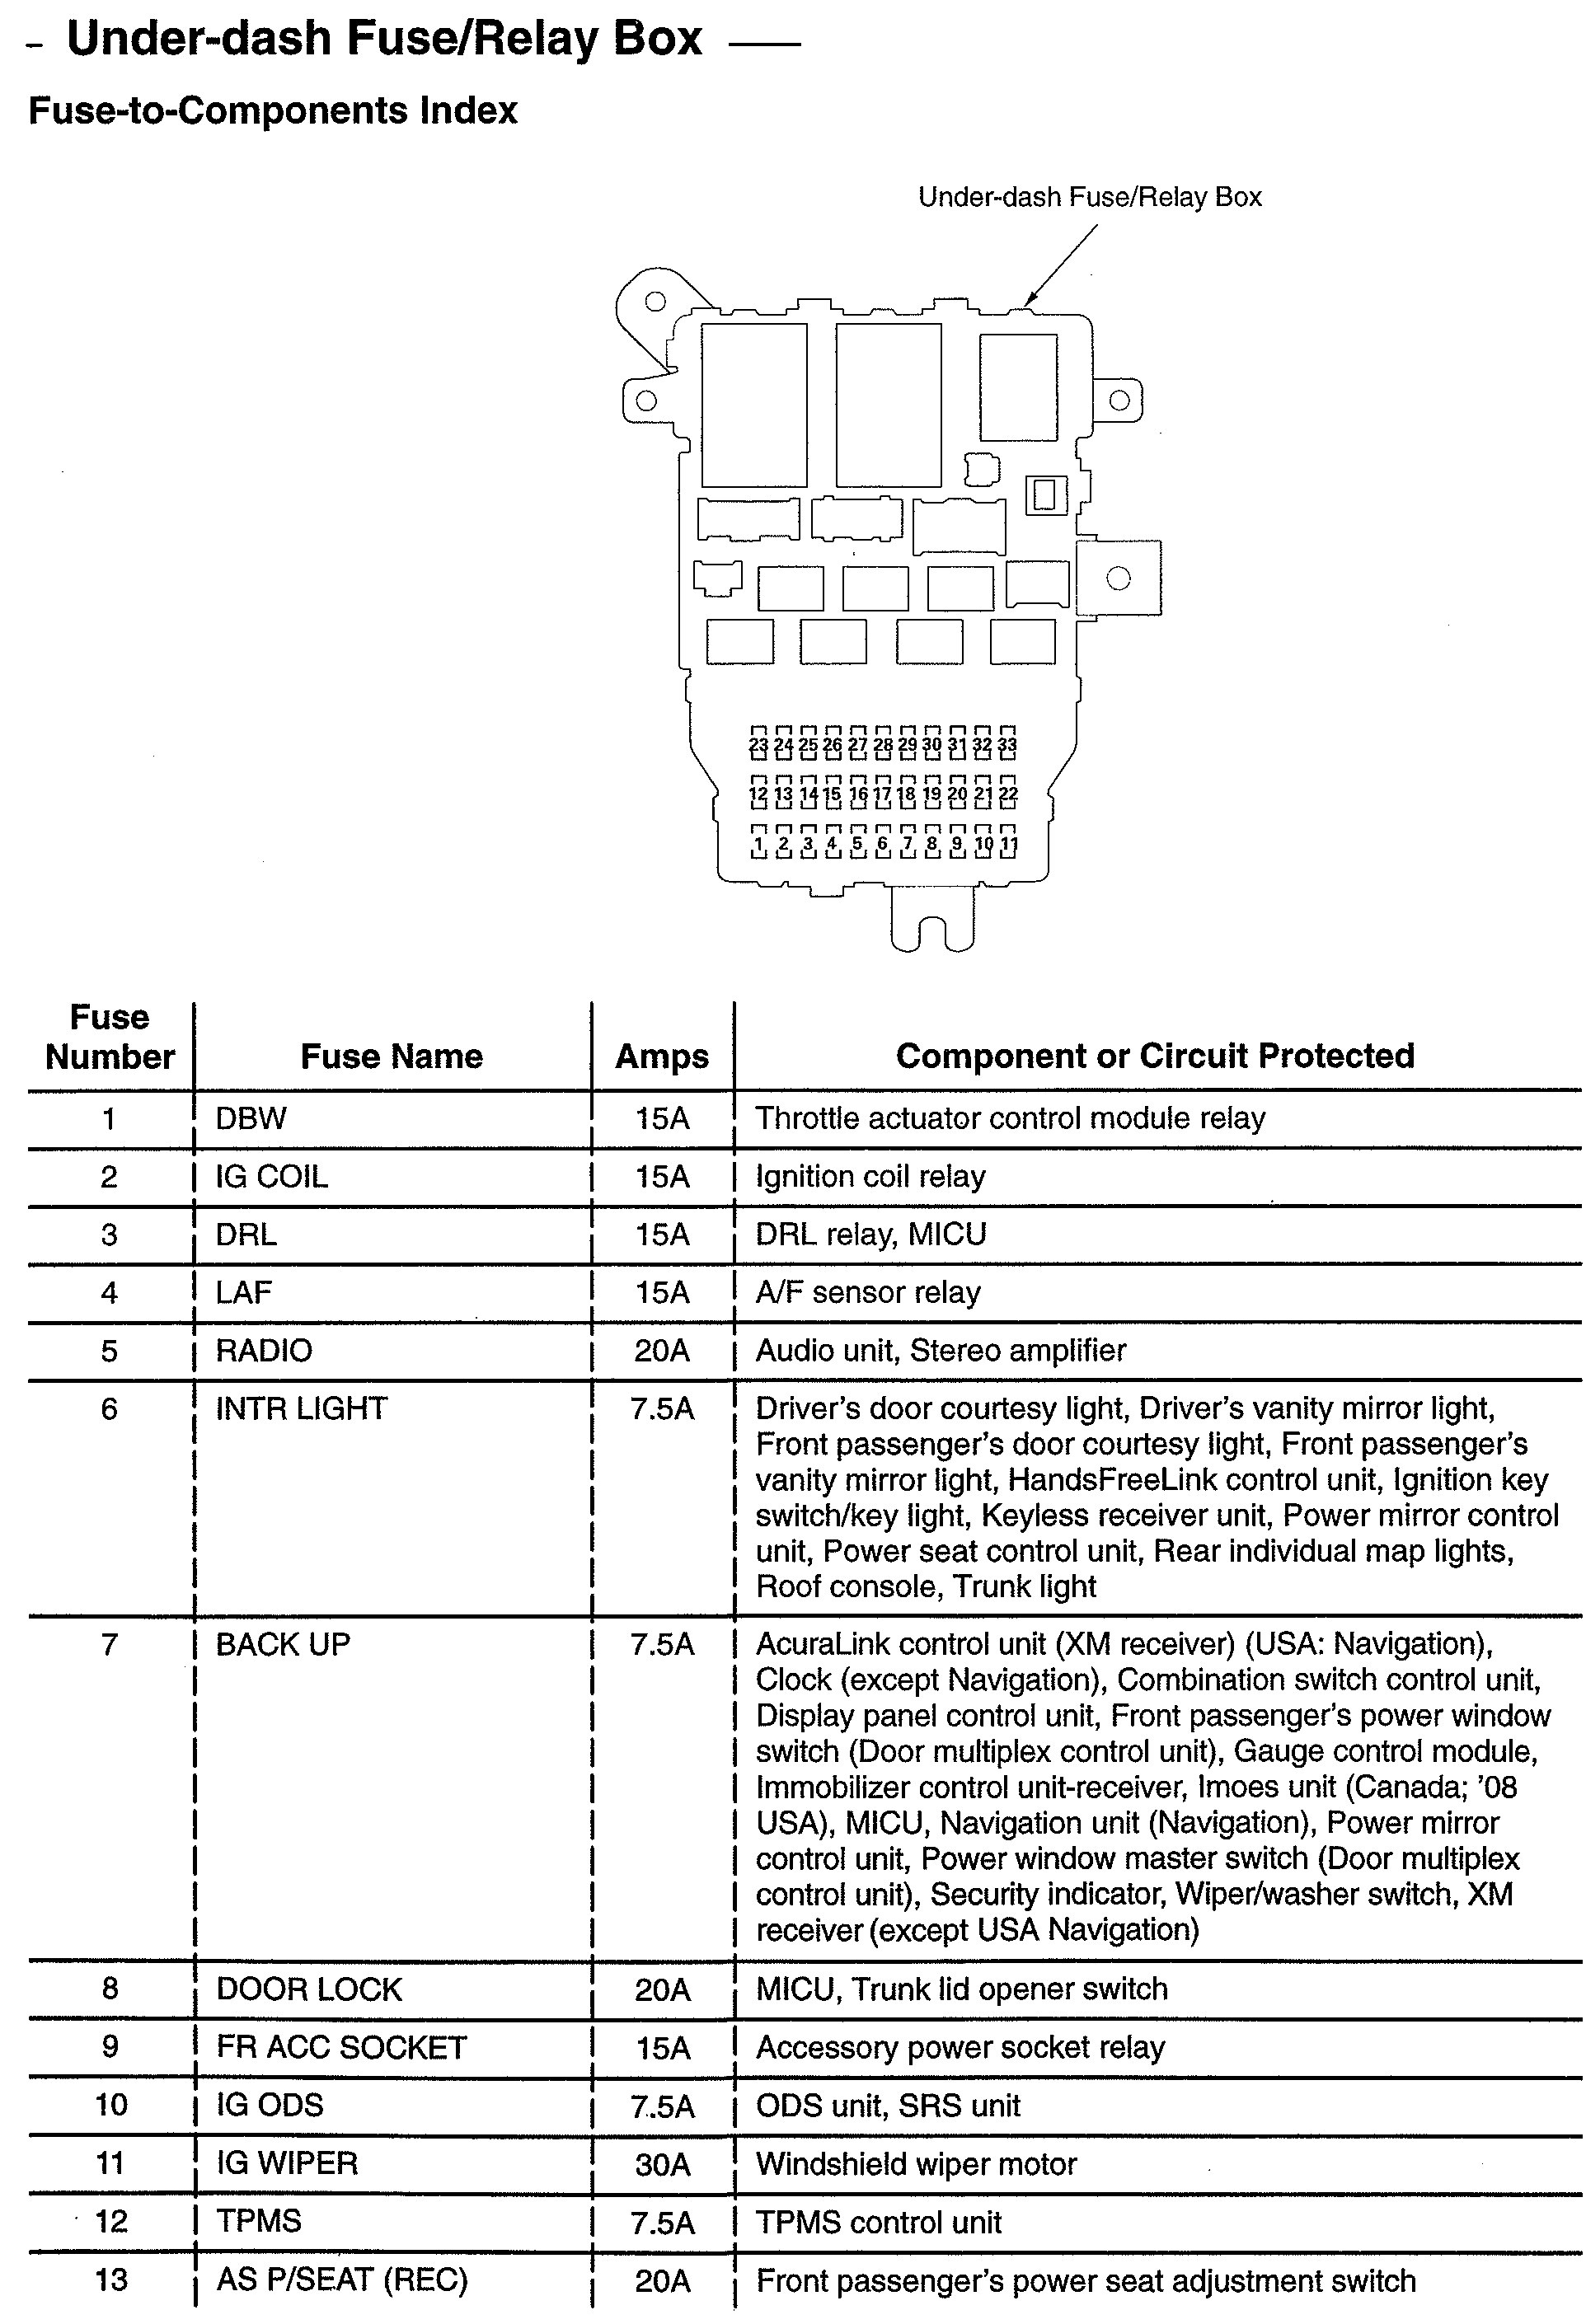 acura tl wiring diagram fuse panel 1 2008 acura tl (2008) wiring diagrams fuse panel carknowledge 2007 acura tl wiring diagram at cita.asia